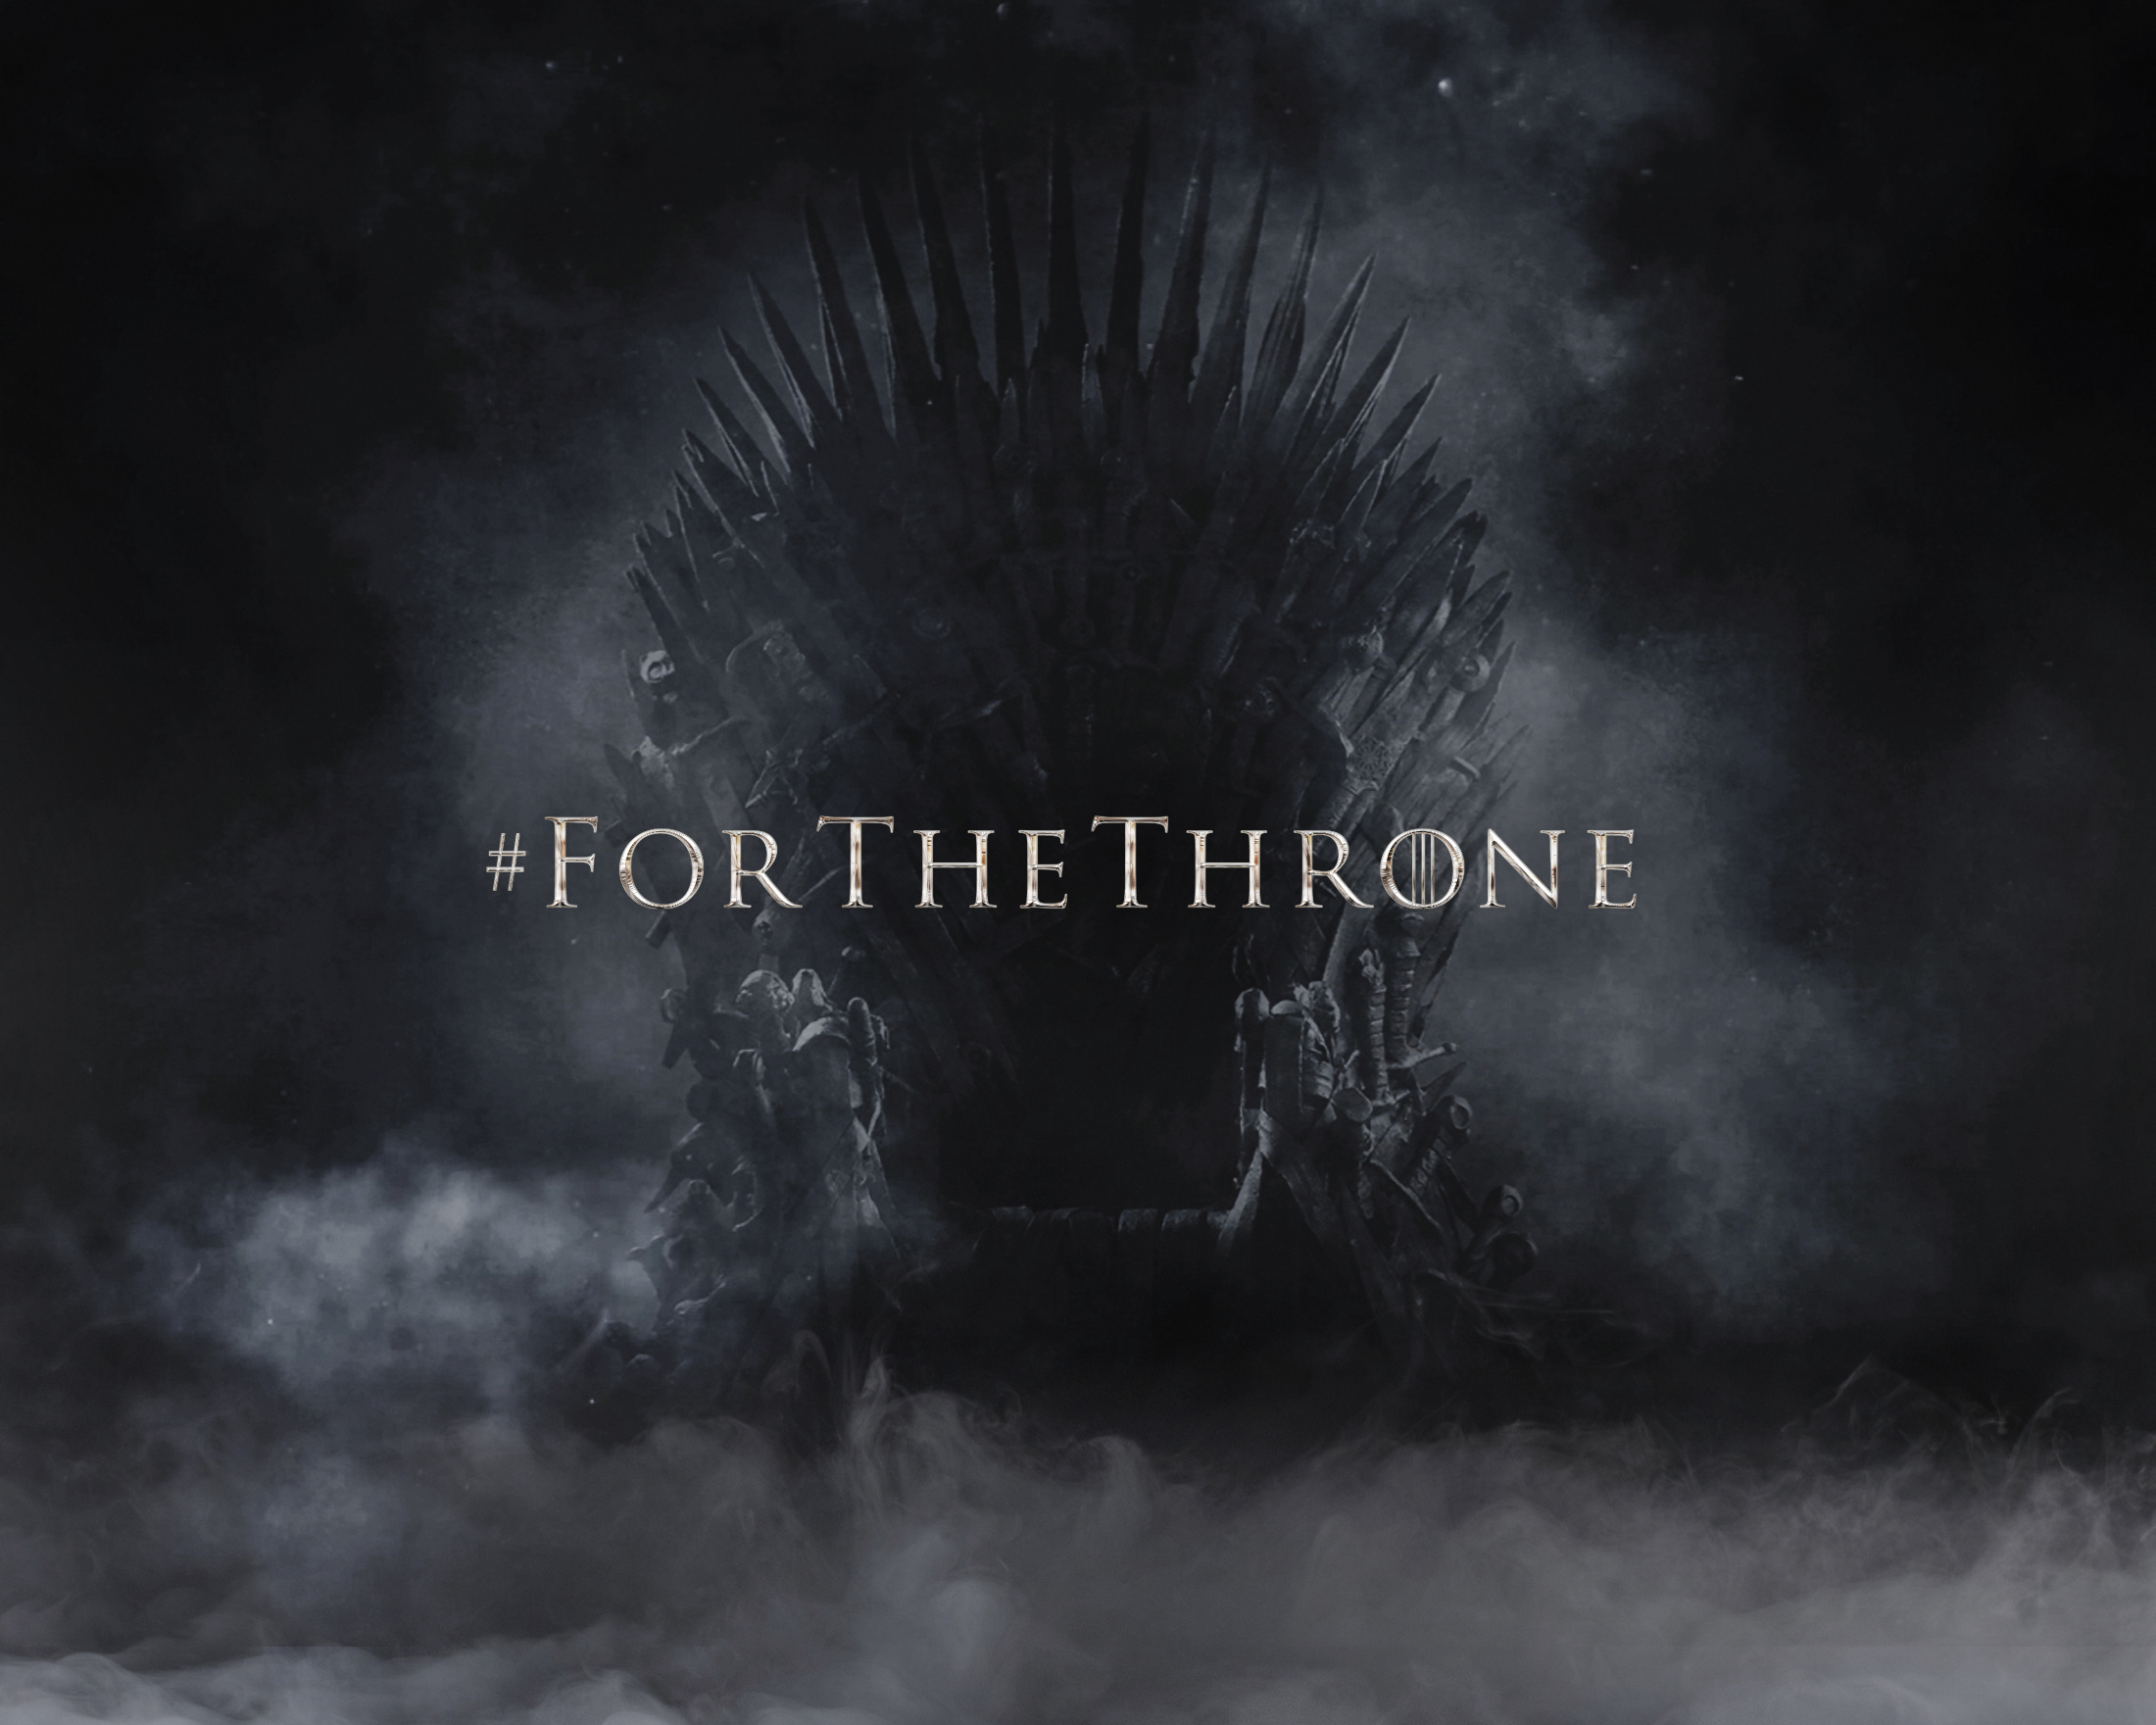 Thumbnail for Game of Thrones   For the Throne Integrated